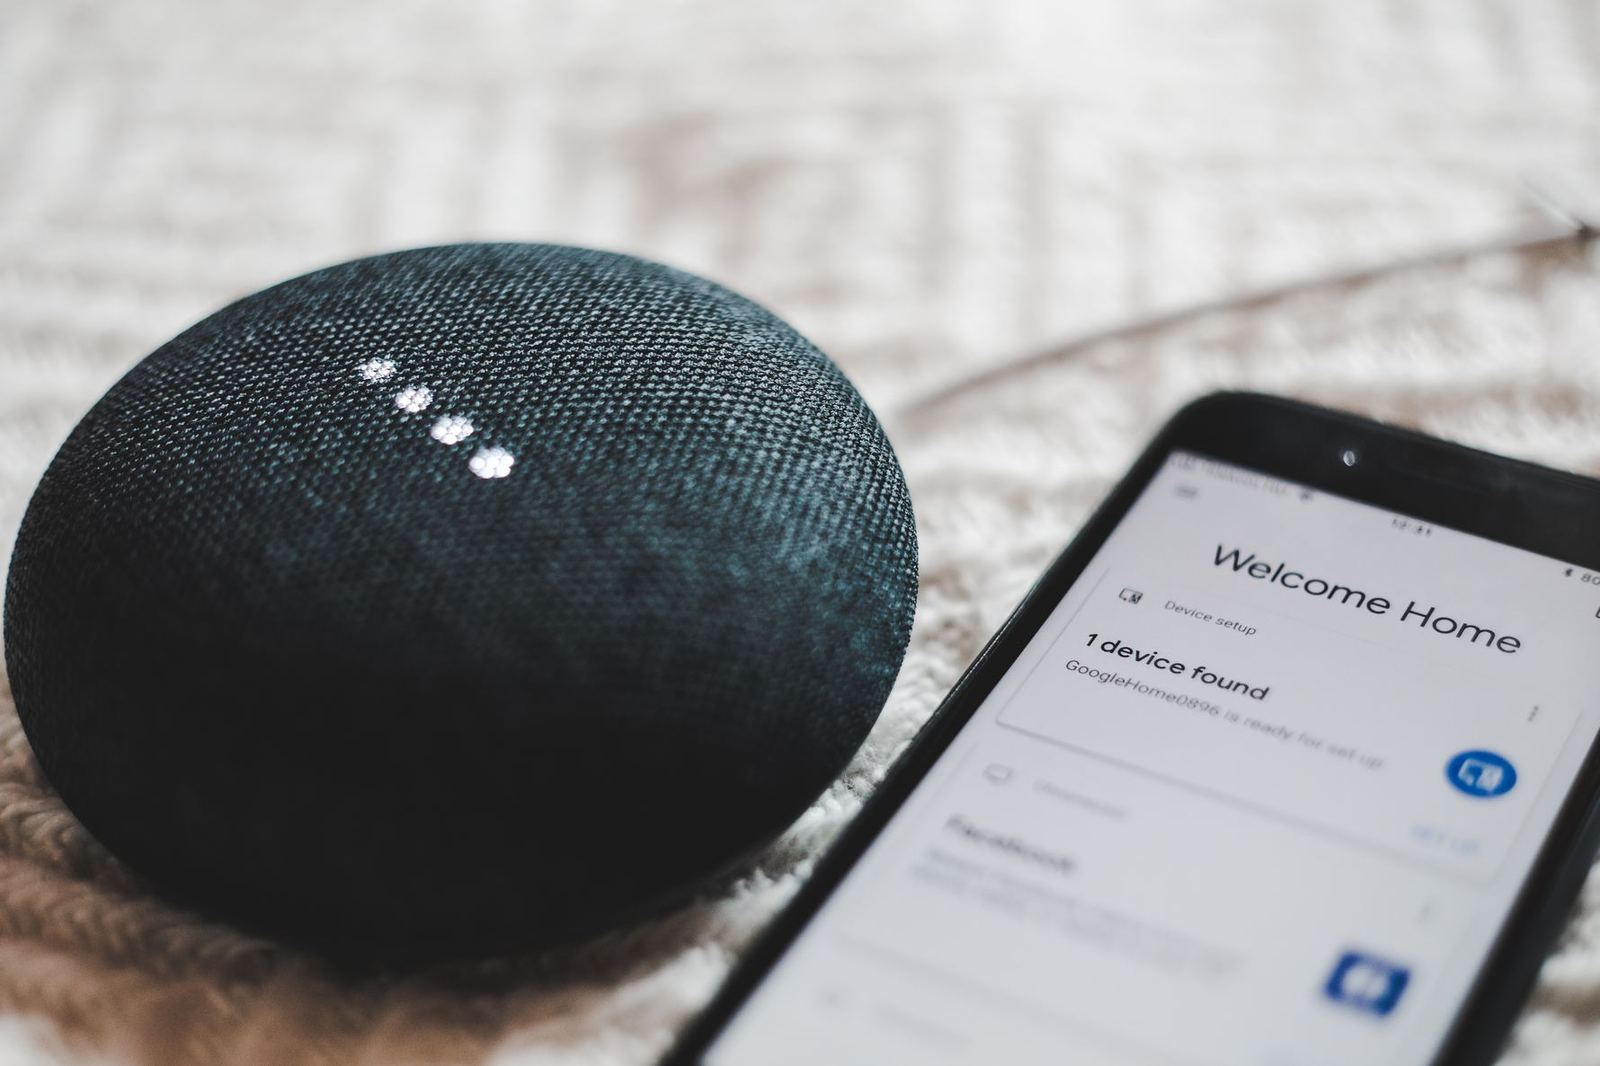 content marketing trends in 2019 includes the use of voice-assisted technology